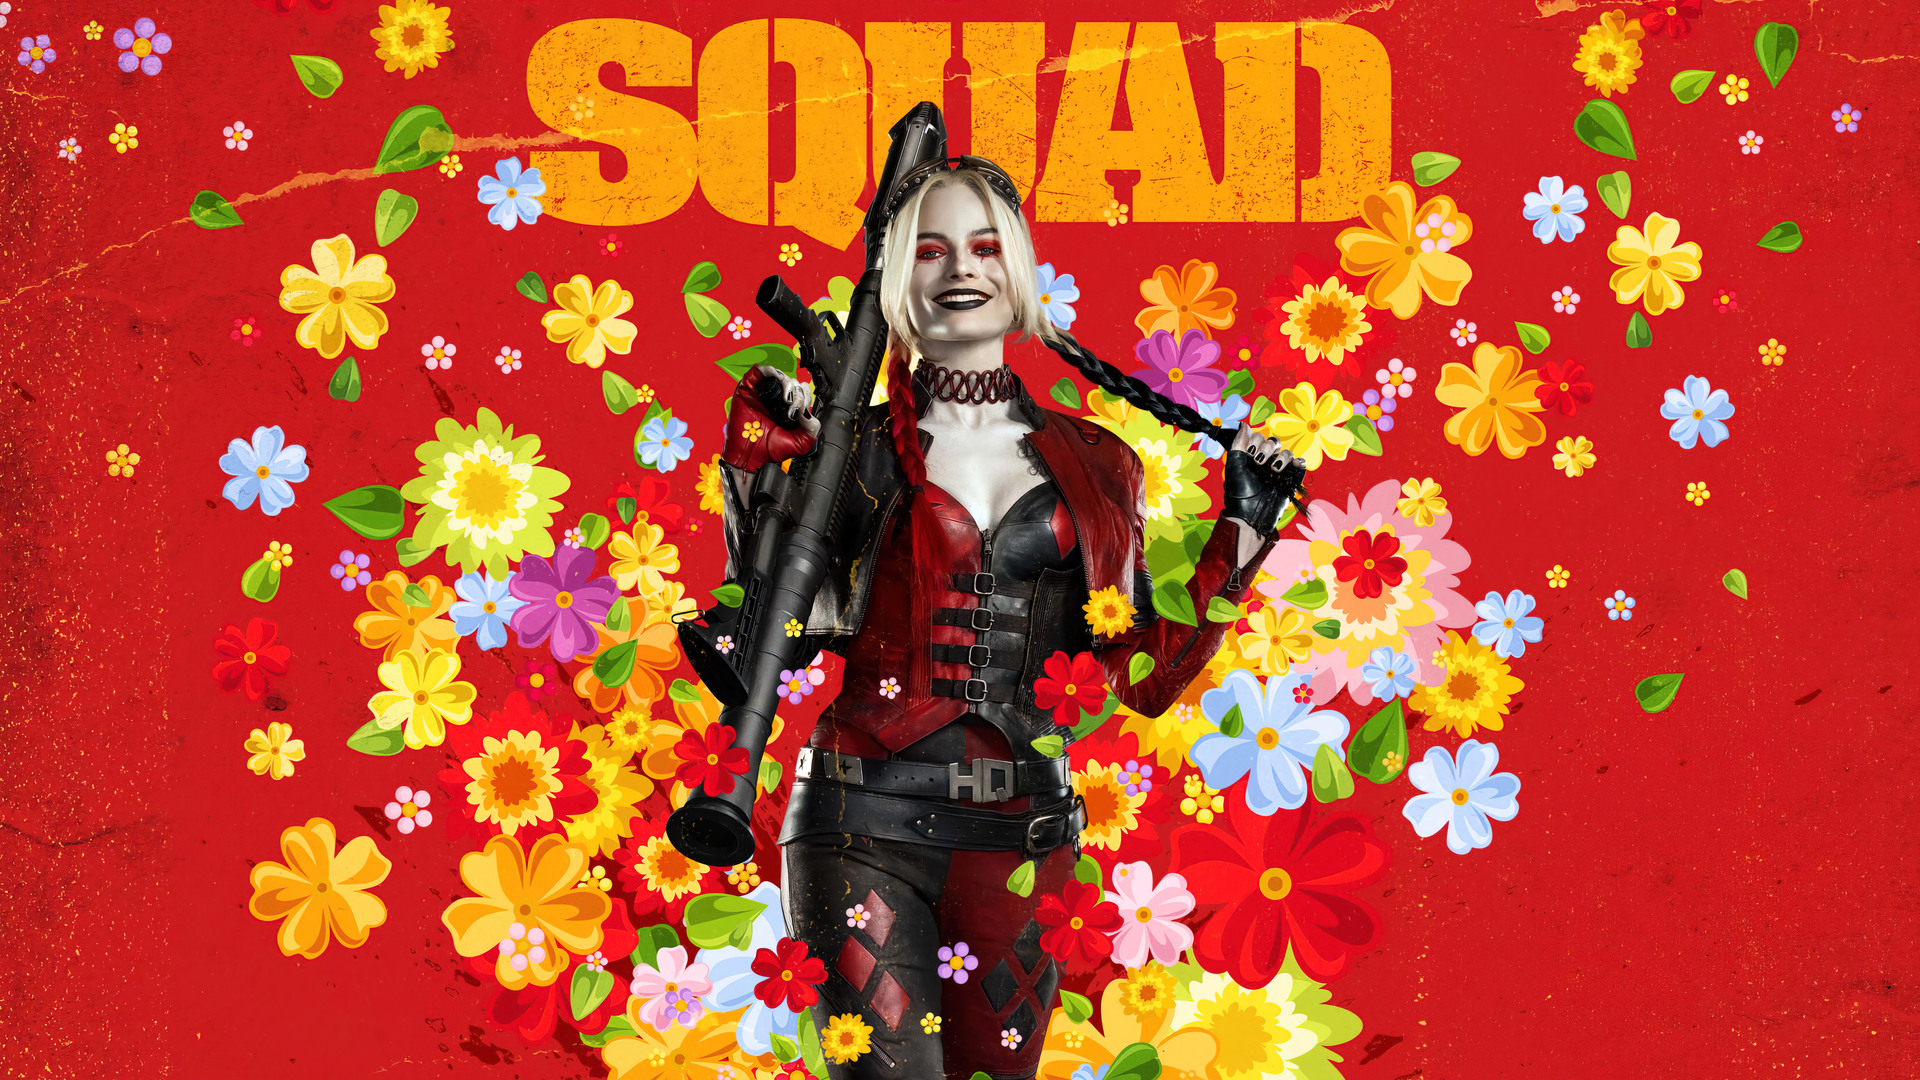 The Suicide Squad Harley Quinn Movie 2021 Poster Wallpaper 4K 53324 1920x1080